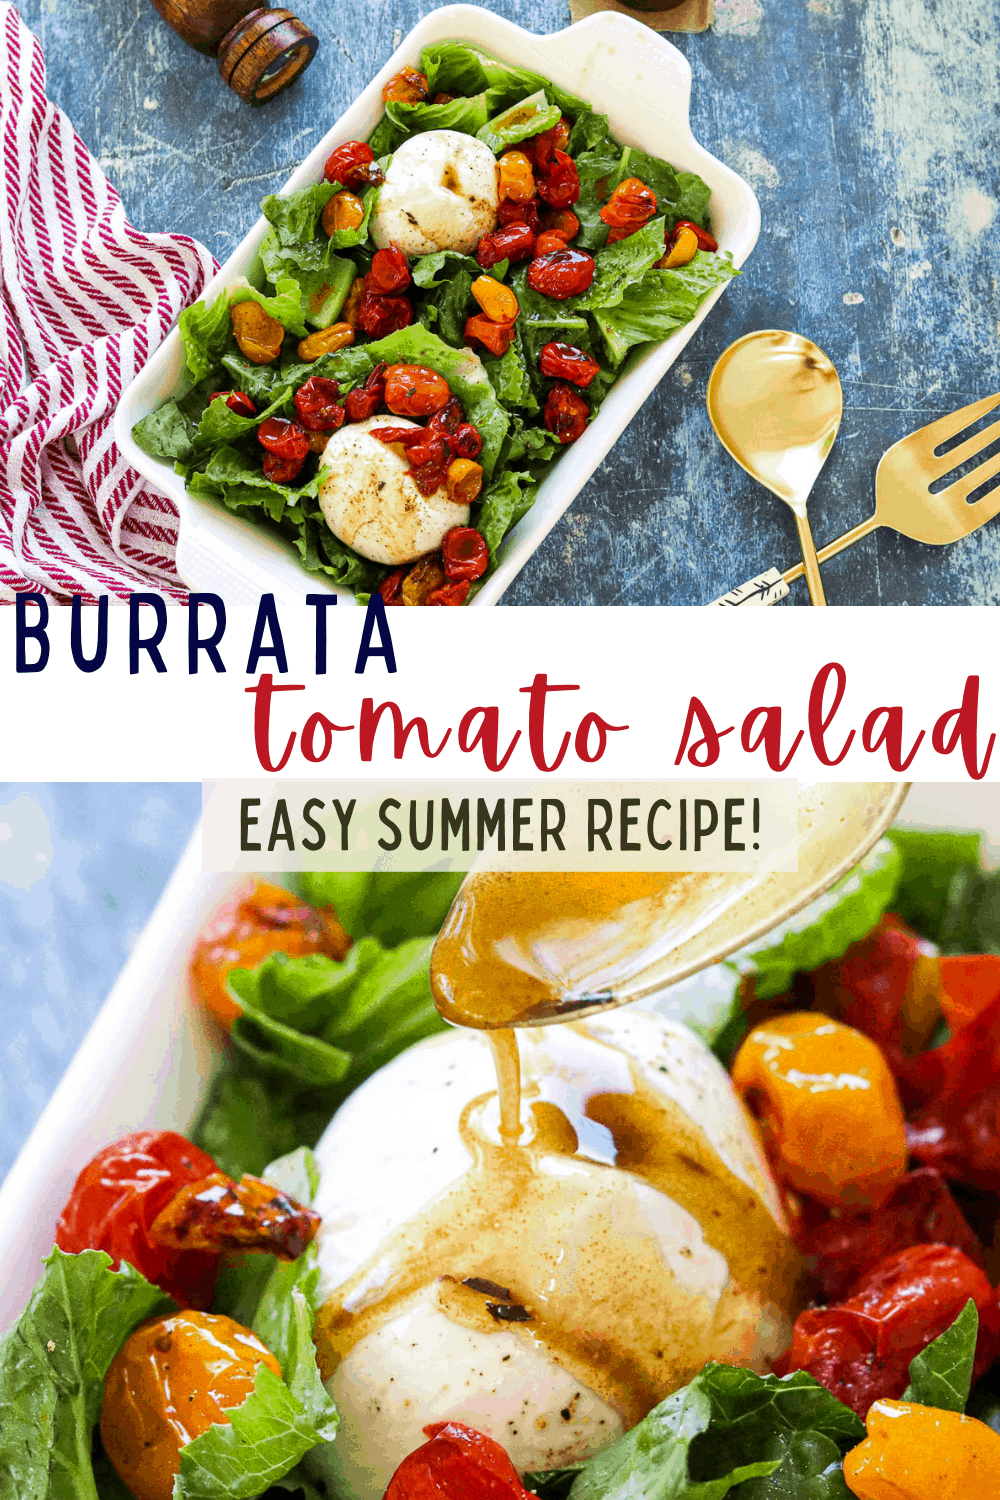 A pinterest pin for Burrata tomato salad with an overhead picture of the salad and an up-close image of a spoon drizzling the dressing on the salad